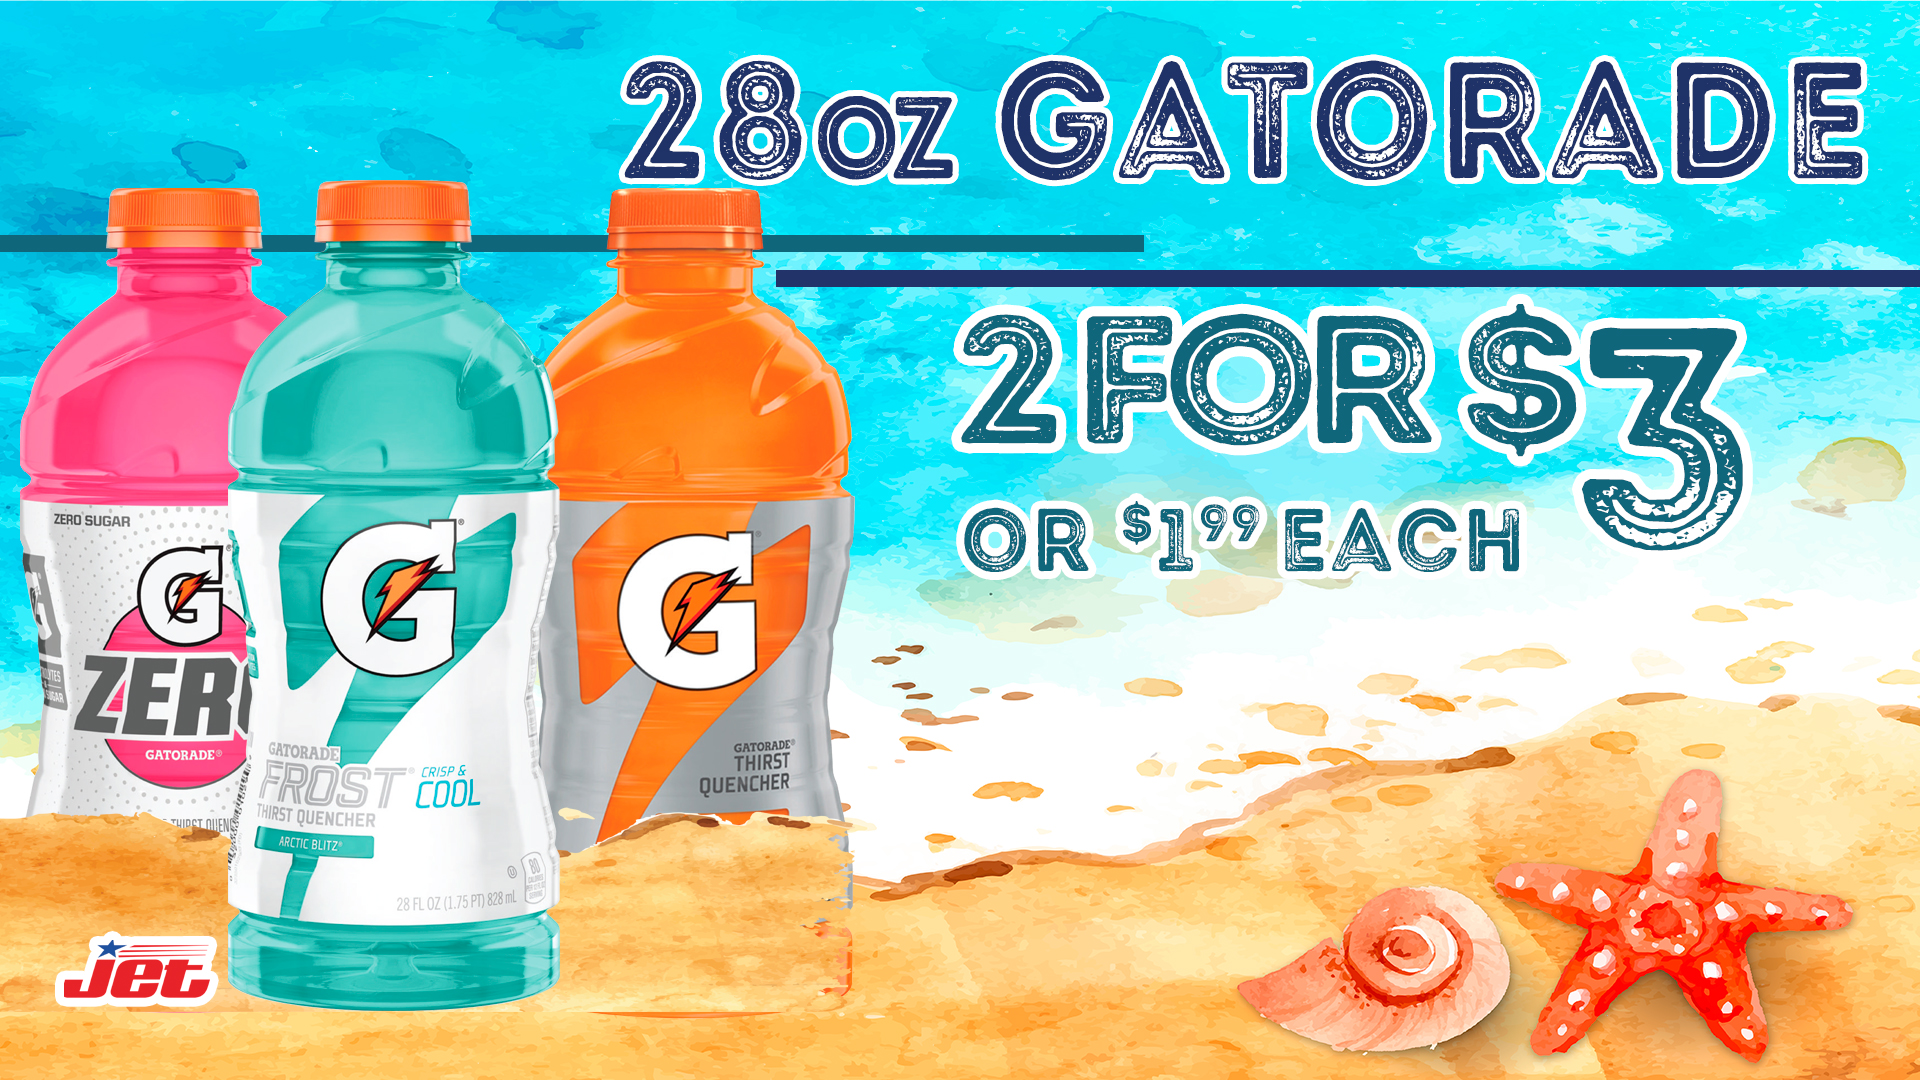 Promo 2 for 3.00 Gatorade